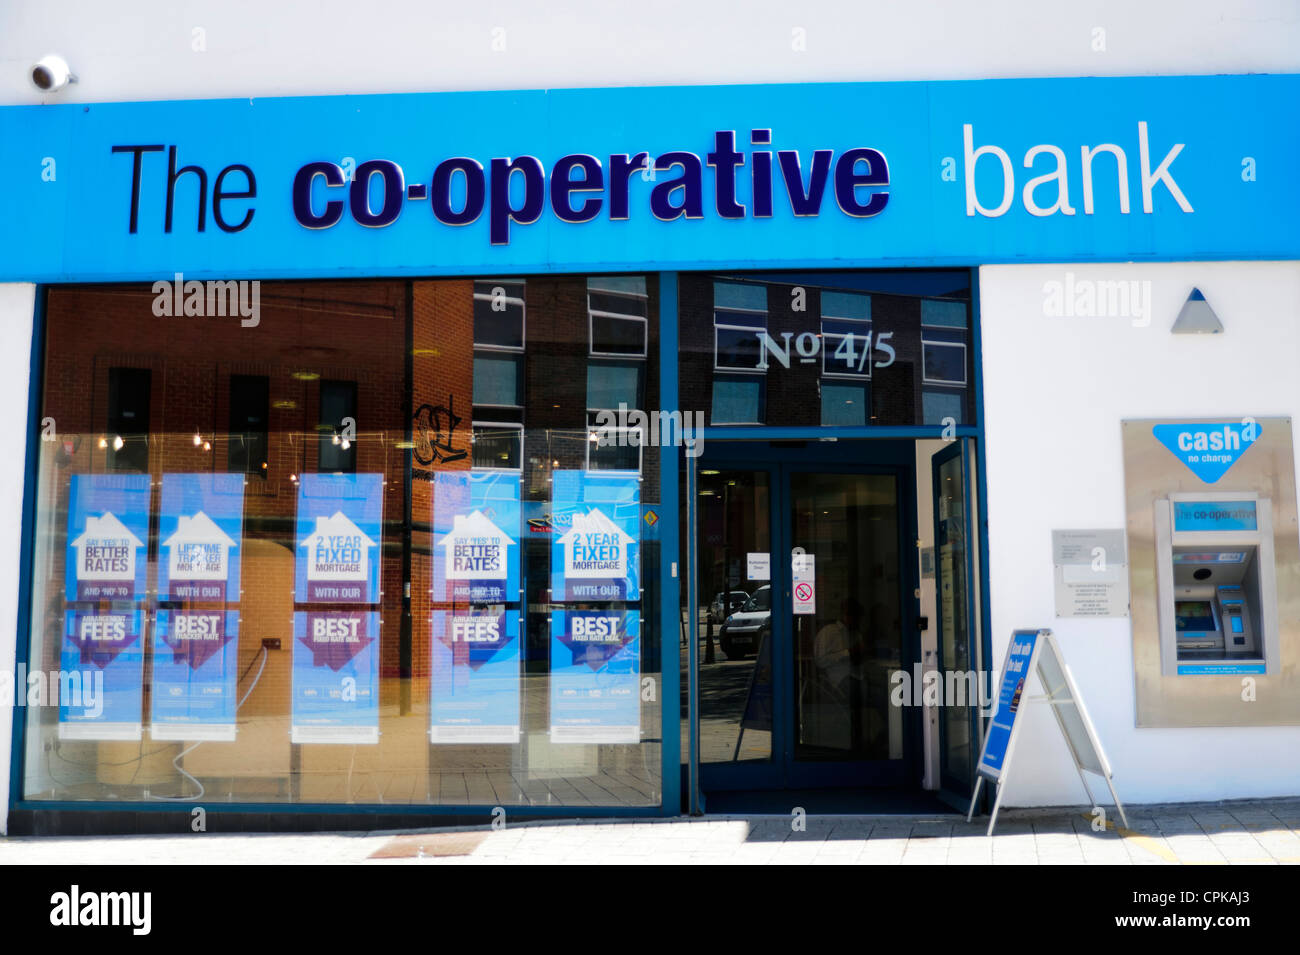 The Co-operative bank in Swindon, UK. - Stock Image